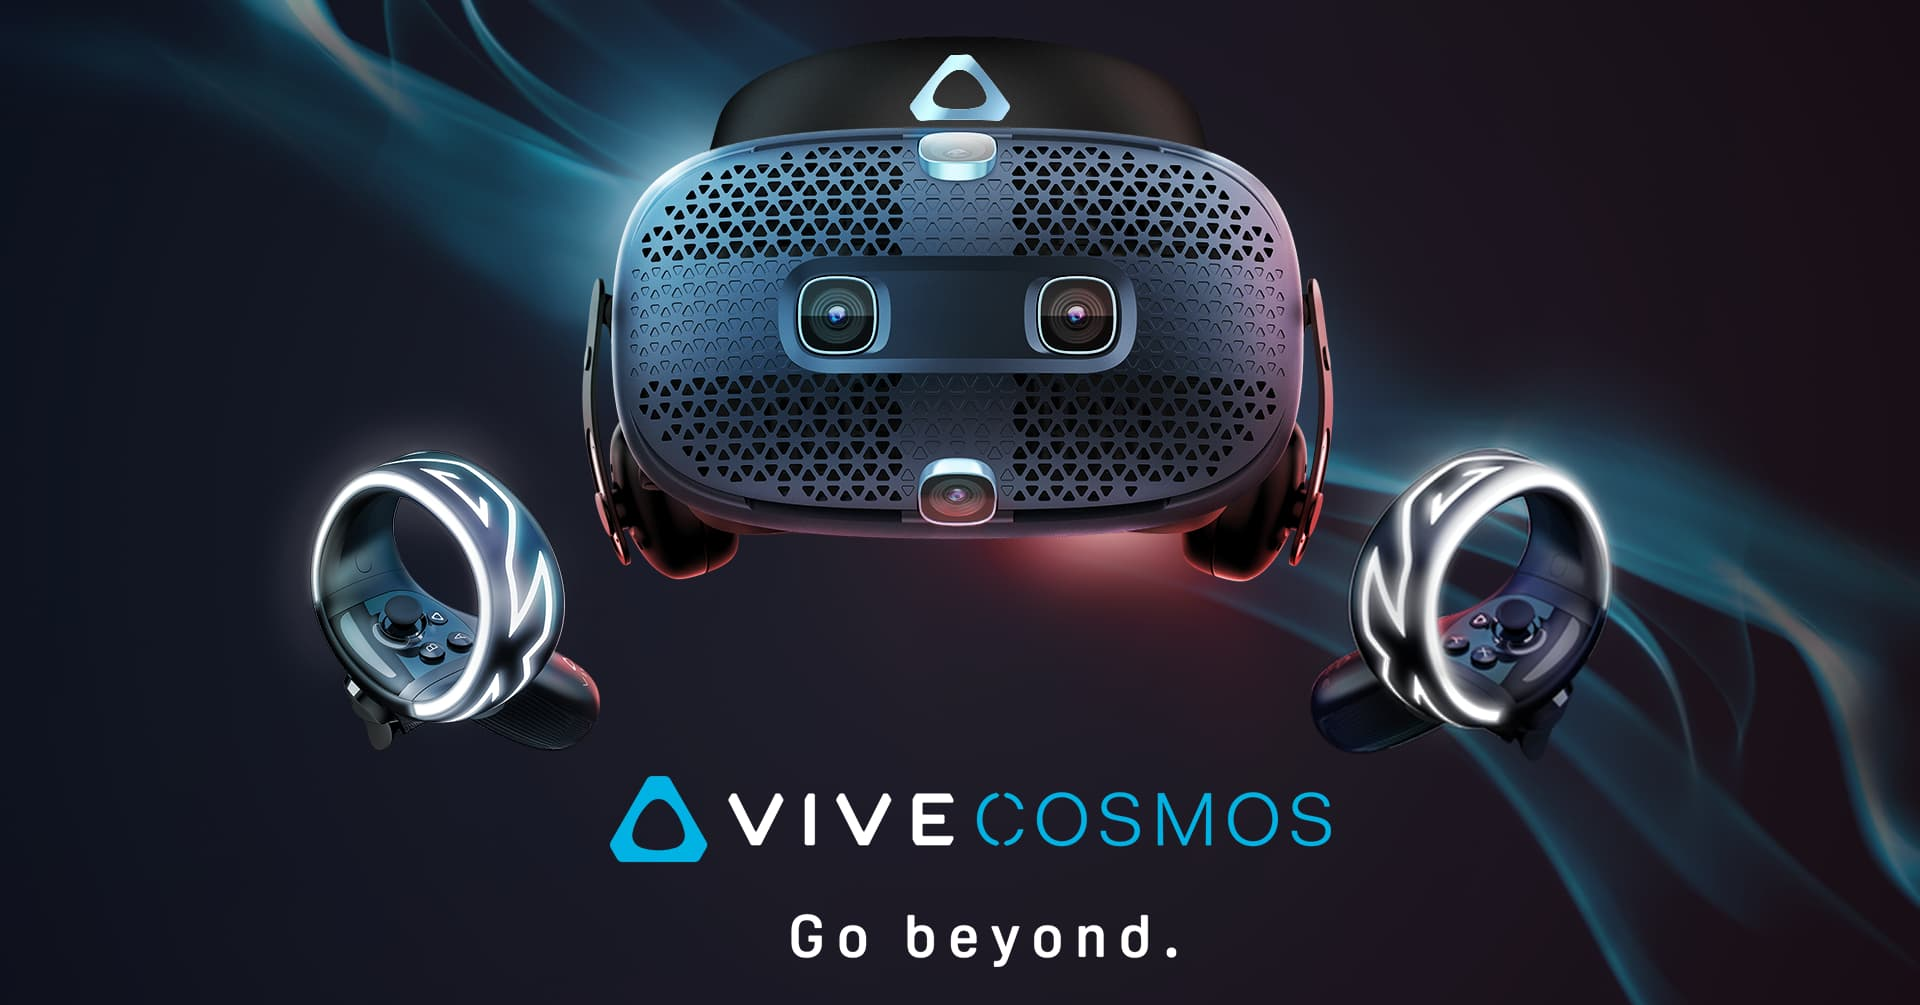 VIVE Cosmos - A new way of PC VR | VIVE™